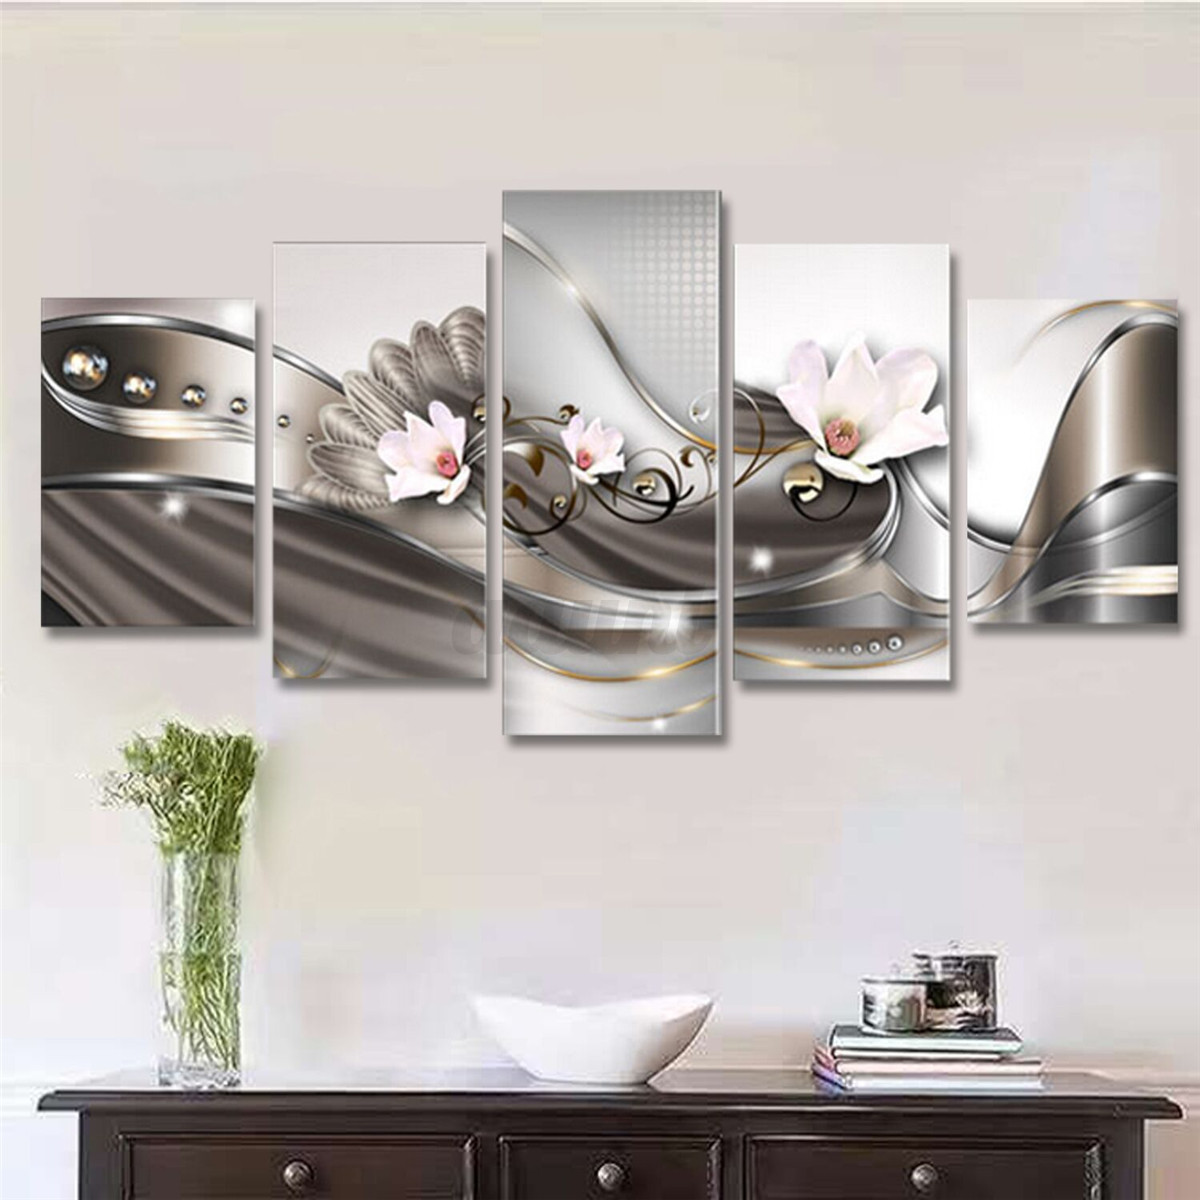 5 Panel Canvas Print Modern Picture Wall Art Decor Home Abstract Flower Framed Ebay